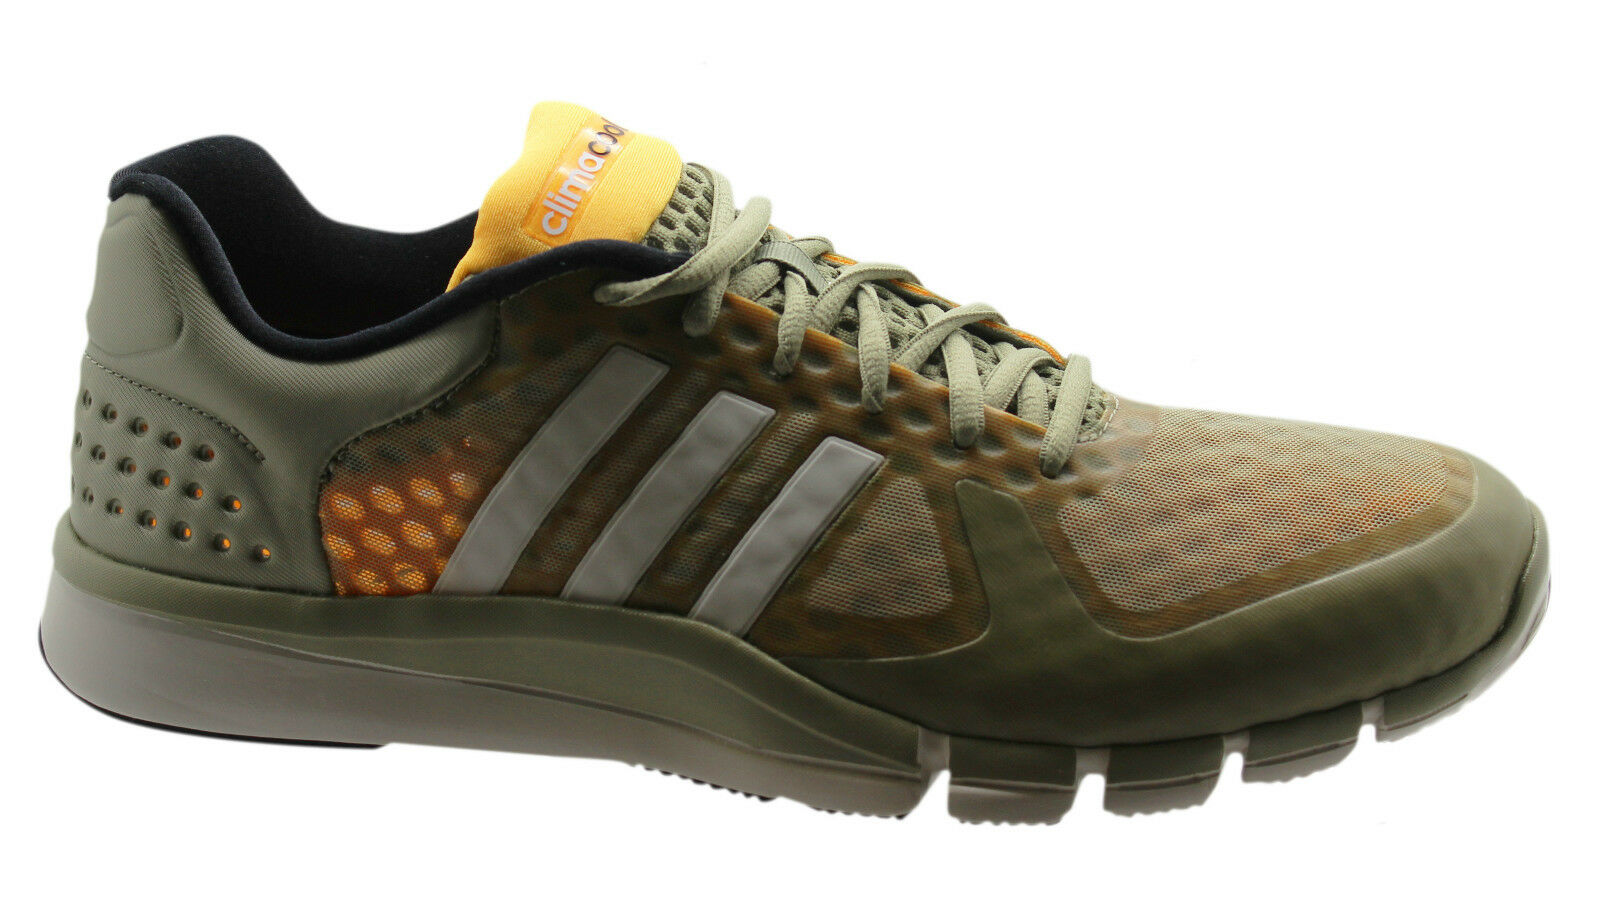 Adidas sport performance trainer adipure 360.2 cc mens läuft trainer performance m18129 u91 448e9e